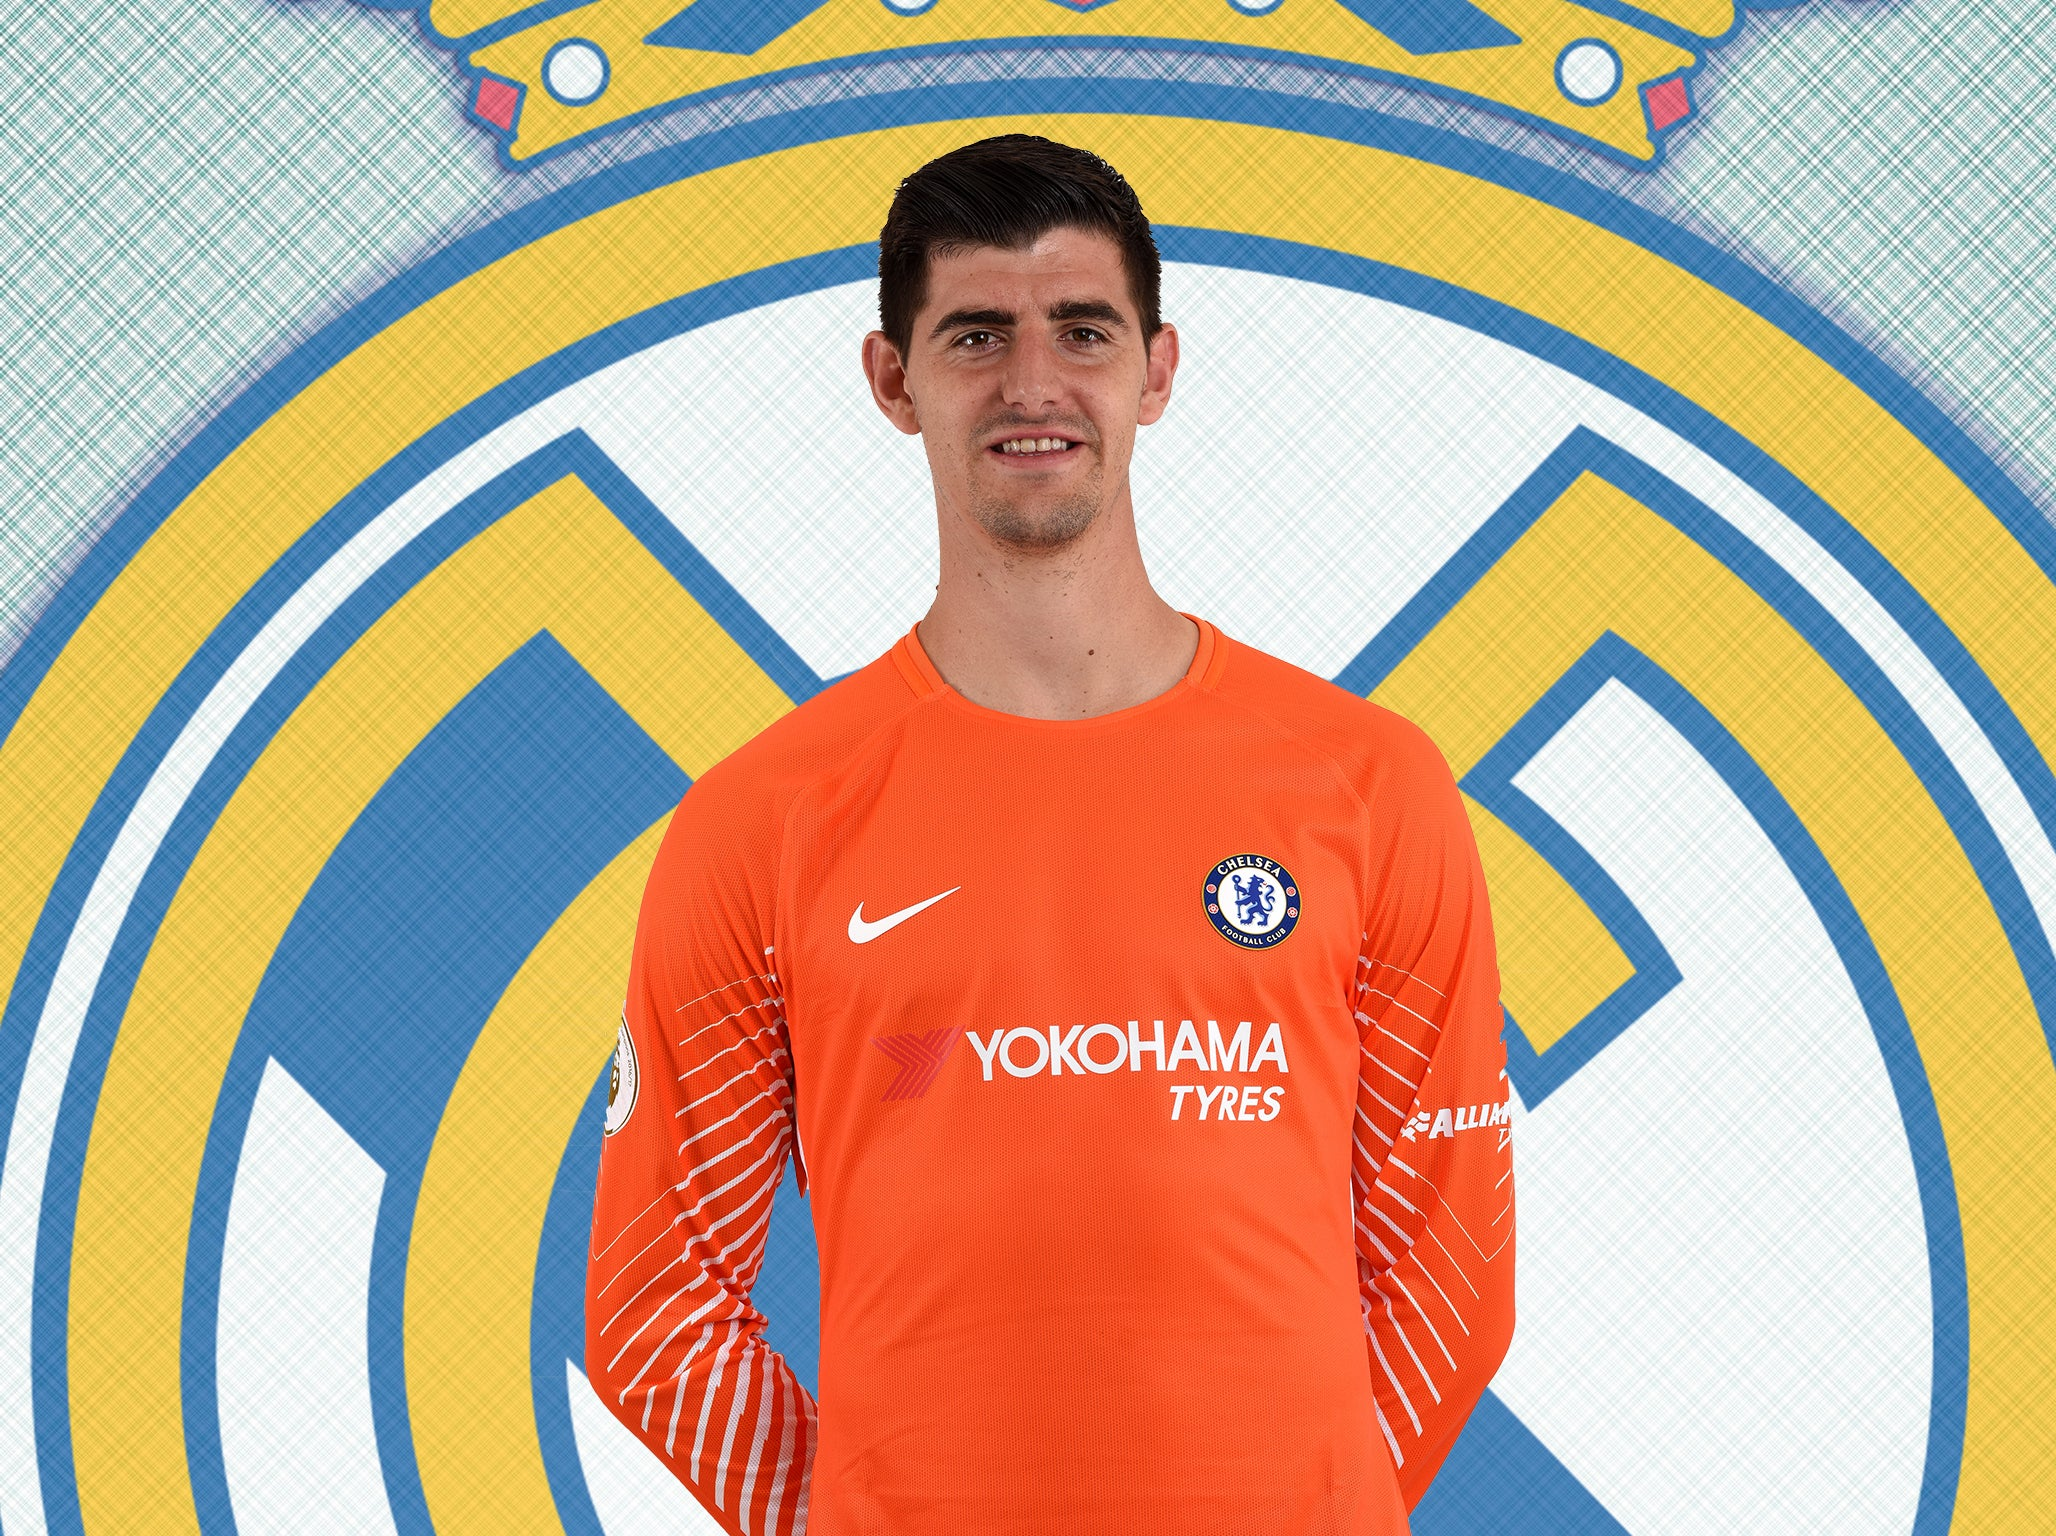 Chelsea confirm Thibaut Courtois move to Real Madrid with Mateo Kovacic joining on season-long loan